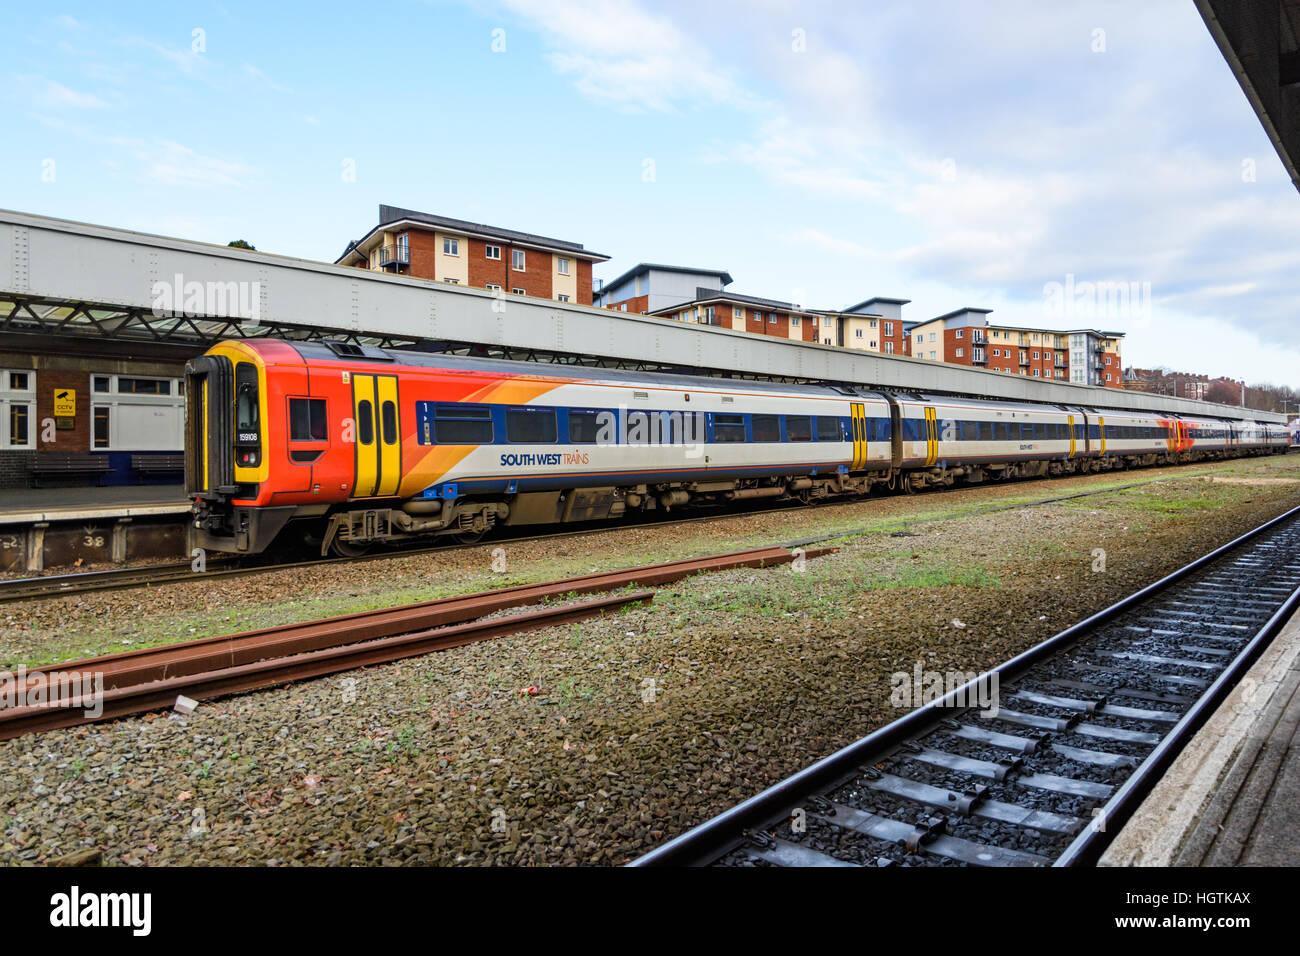 Southwest Trains passenger train at Exeter Central railway station Stock Photo